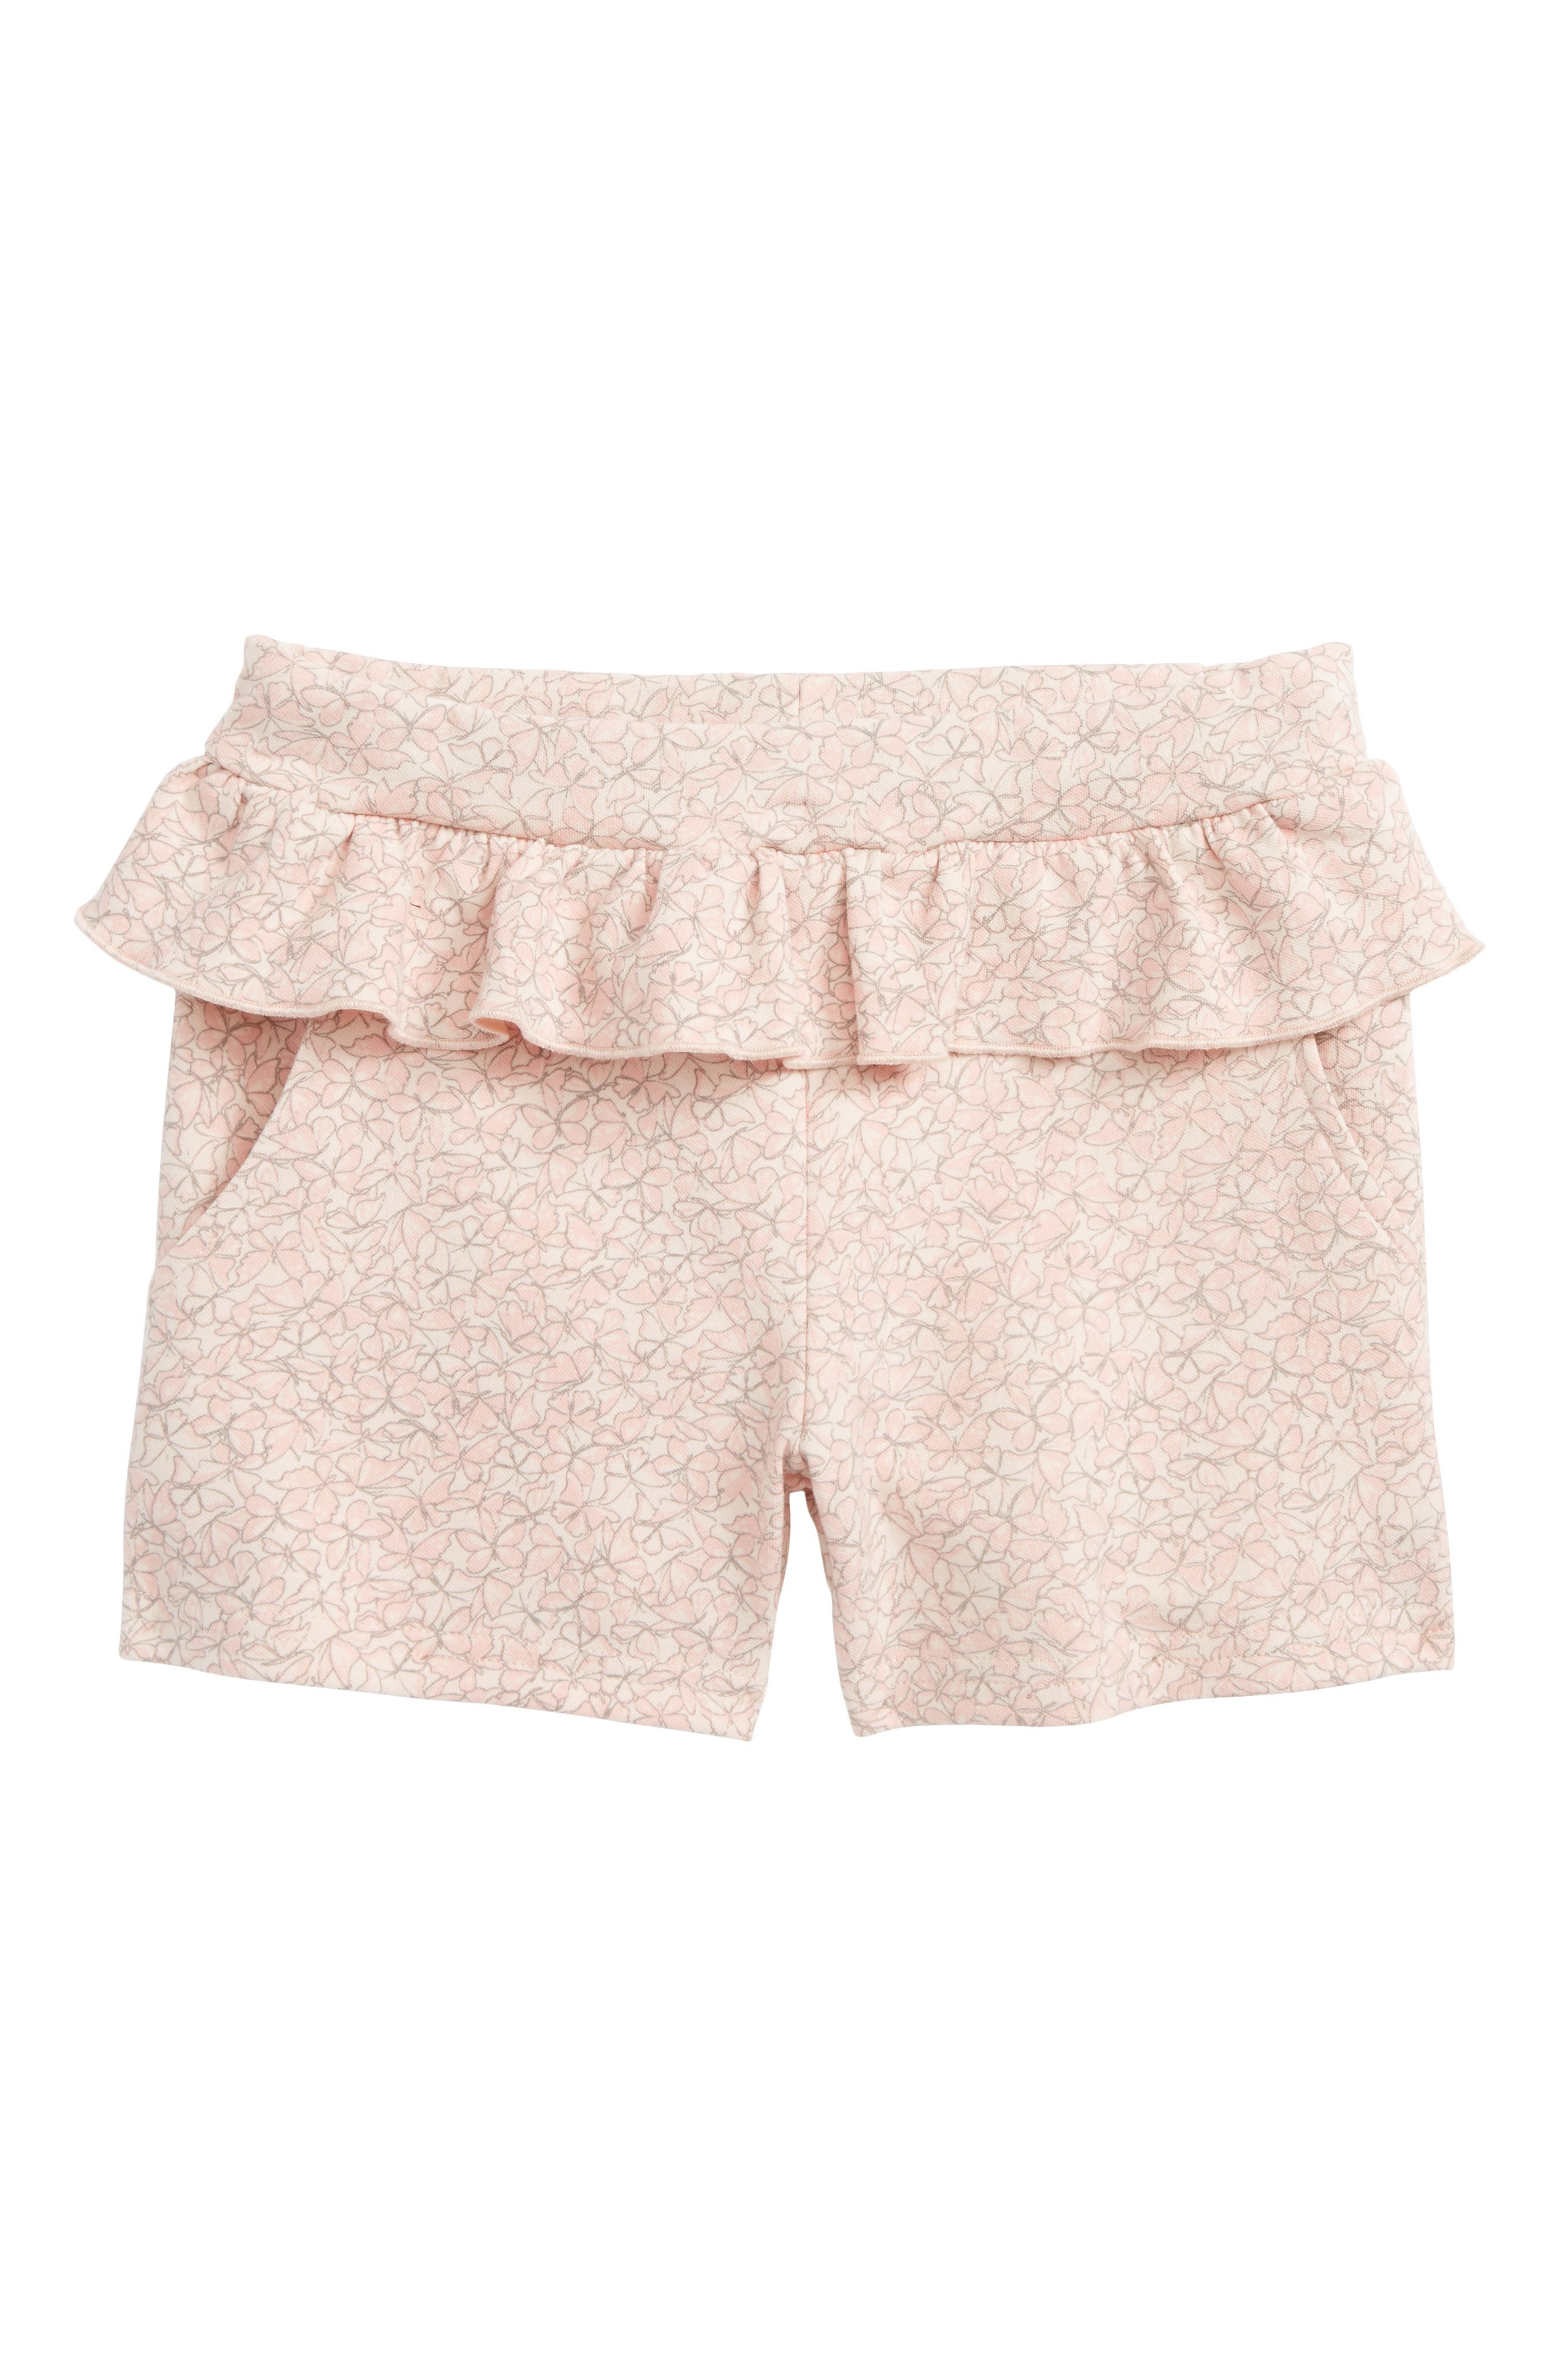 Butterfly Ruffle Shorts,                         Main,                         color, 650